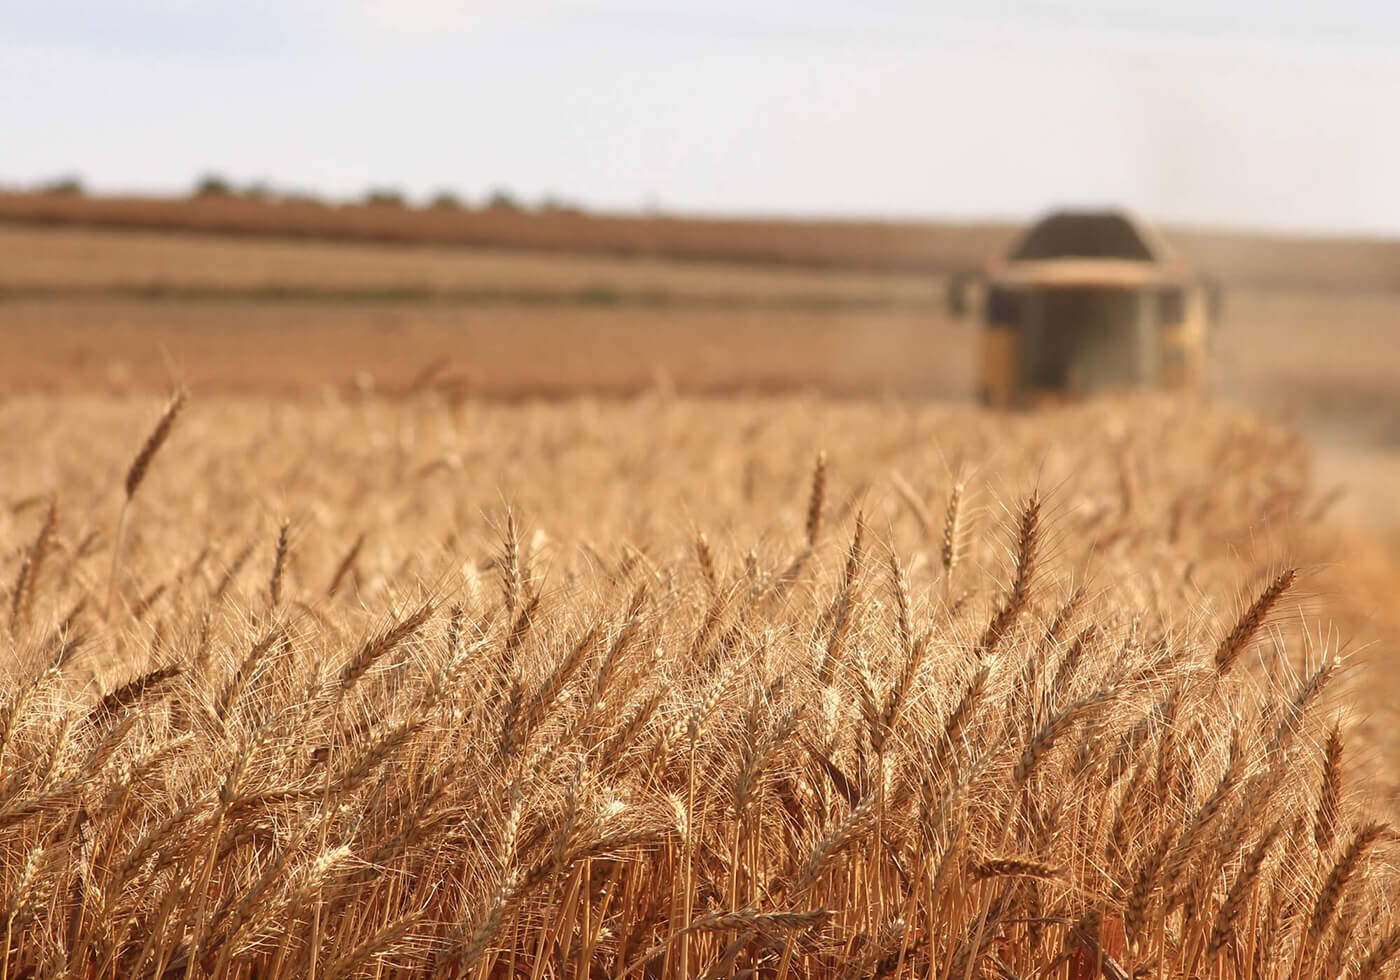 Harvesting wheat crop